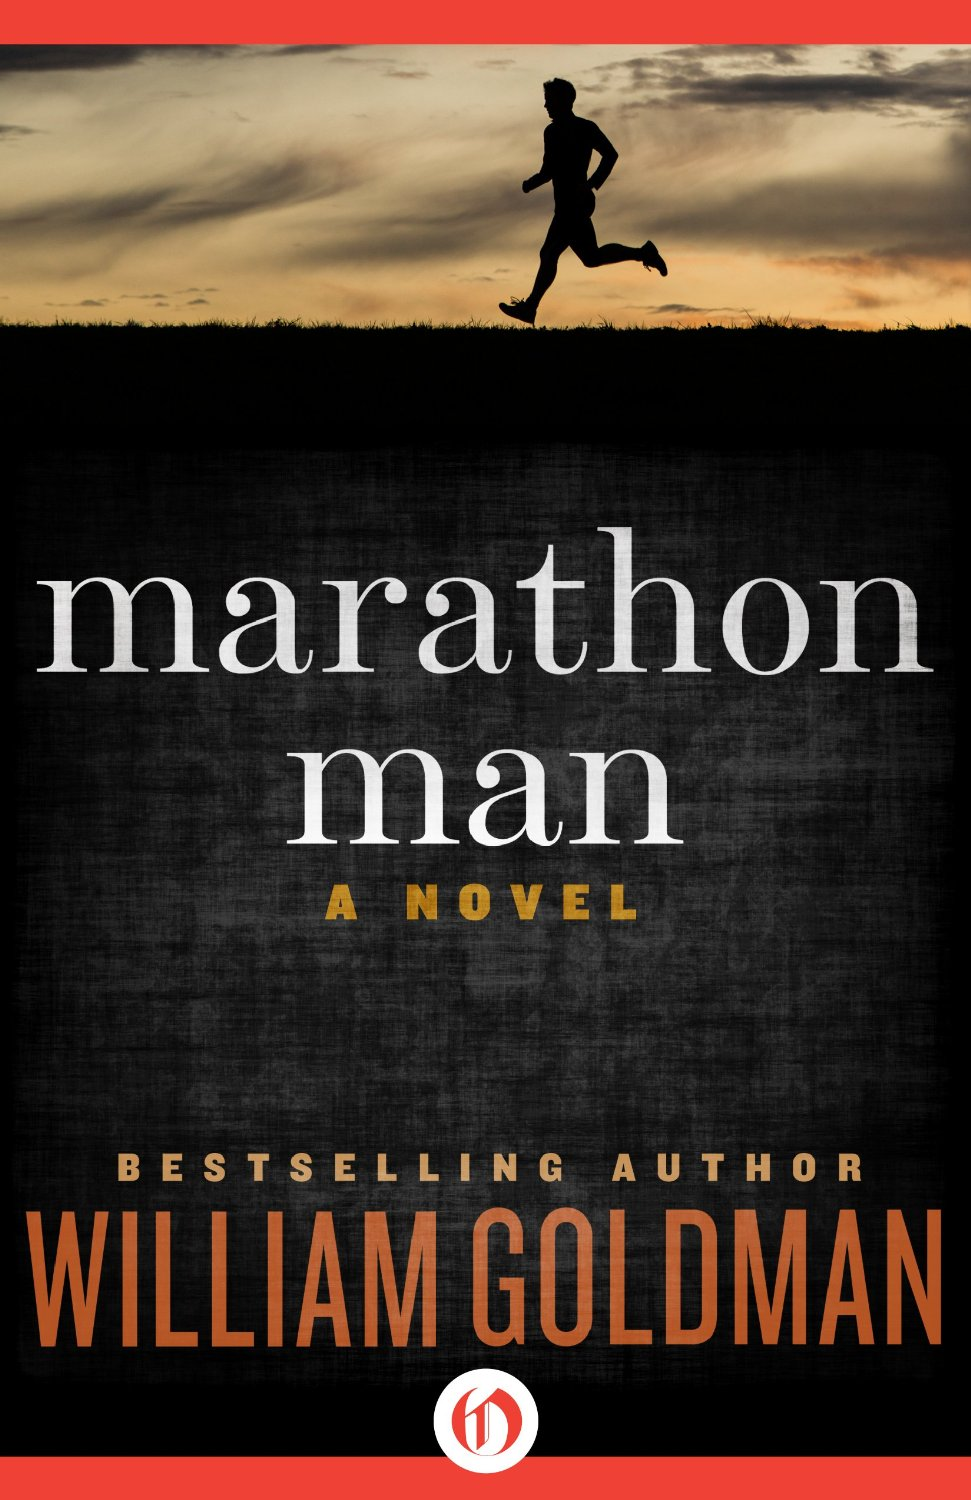 an analysis of greed in marathon man by william goldman and inside man by spike lee Derbyvillecom - horse racing nation - online racing - the original large scale horse racing simulation game and management game.